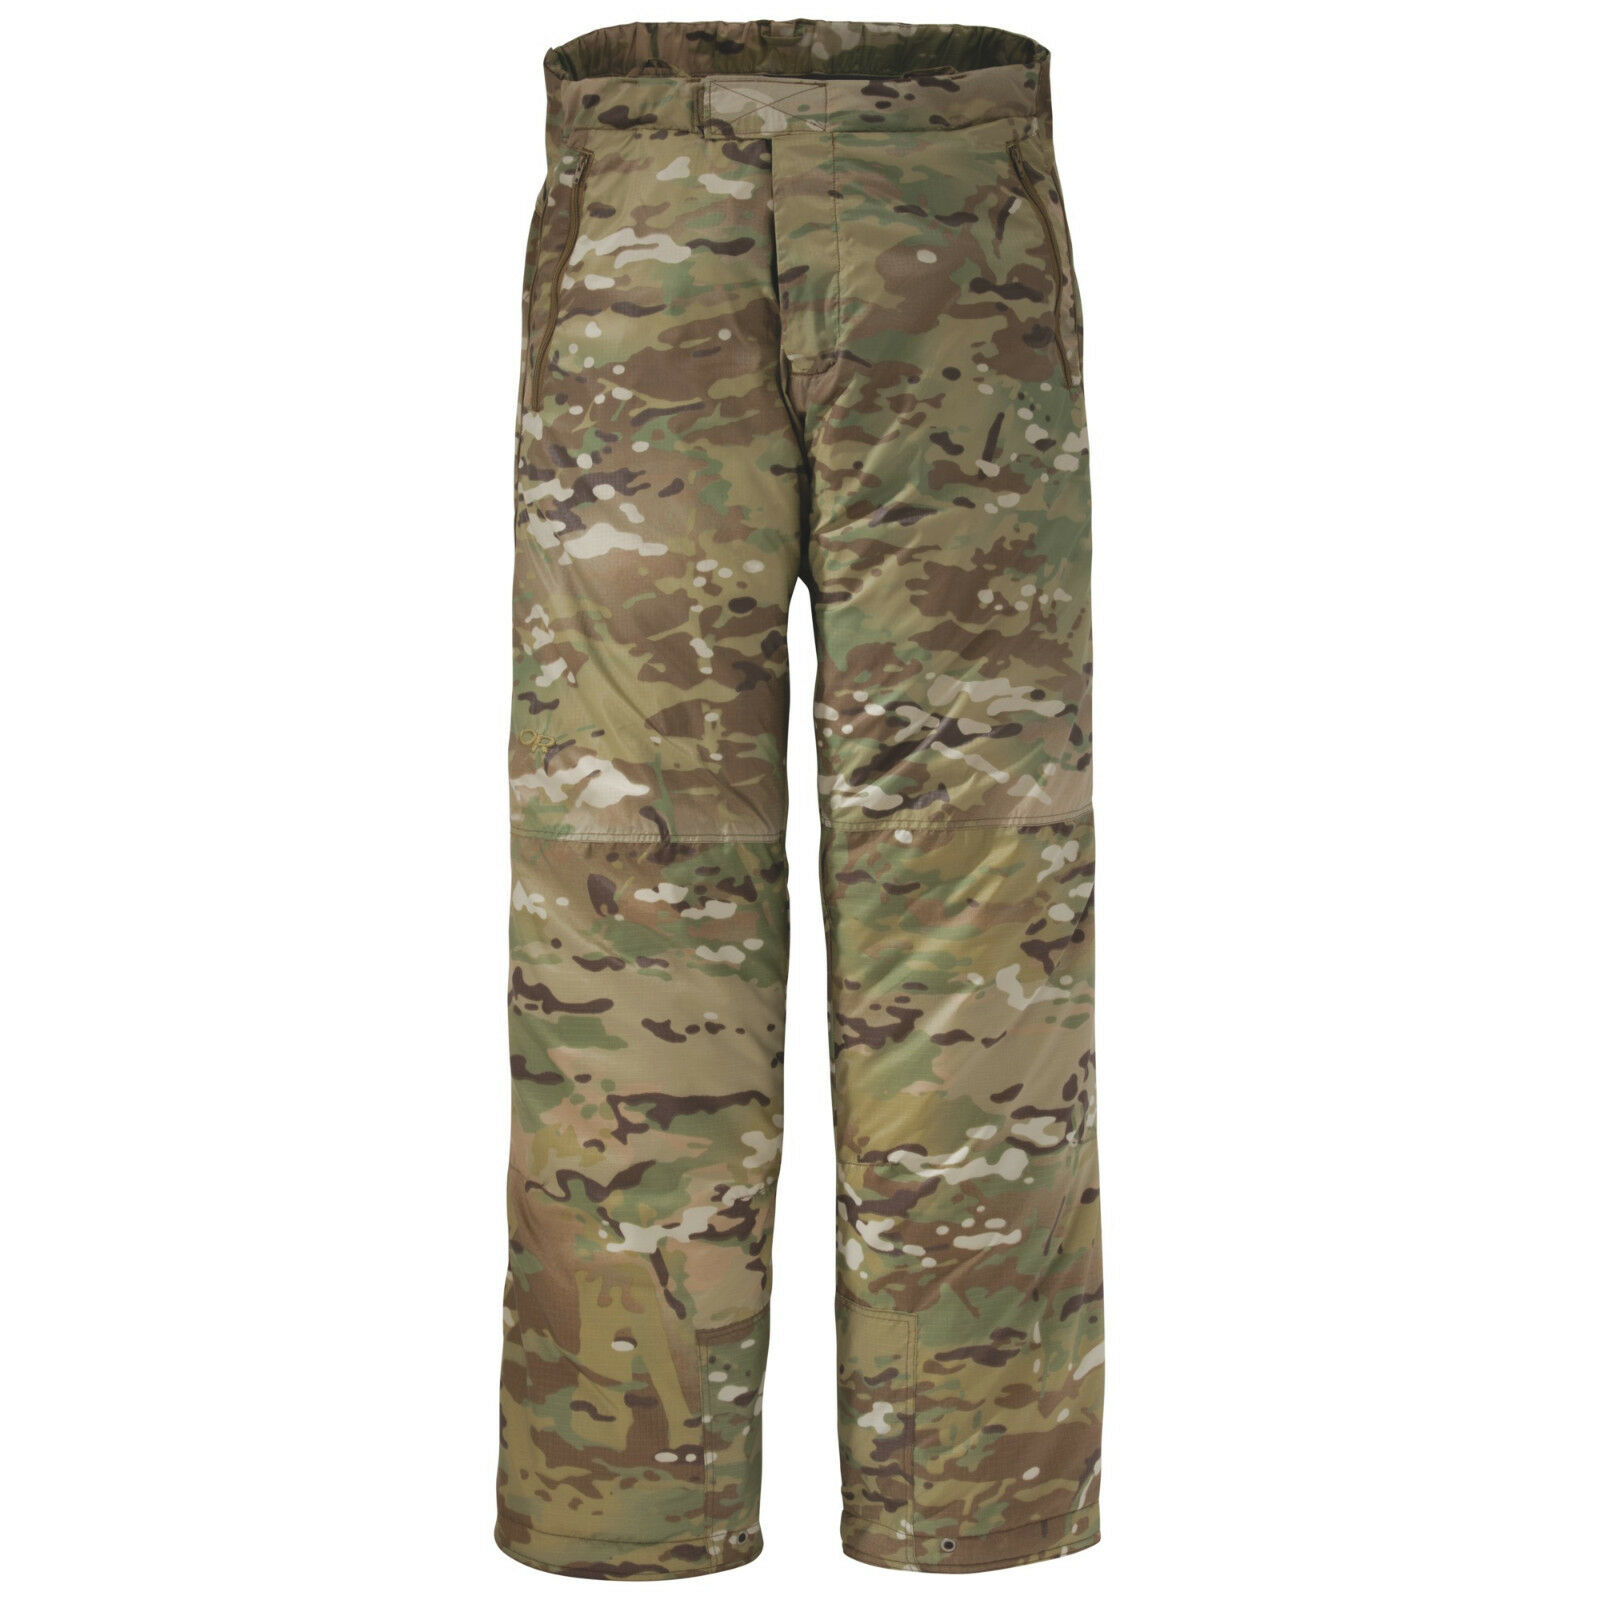 Outdoor Research Tradecraft Pantalones Multicamuflaje Ocp